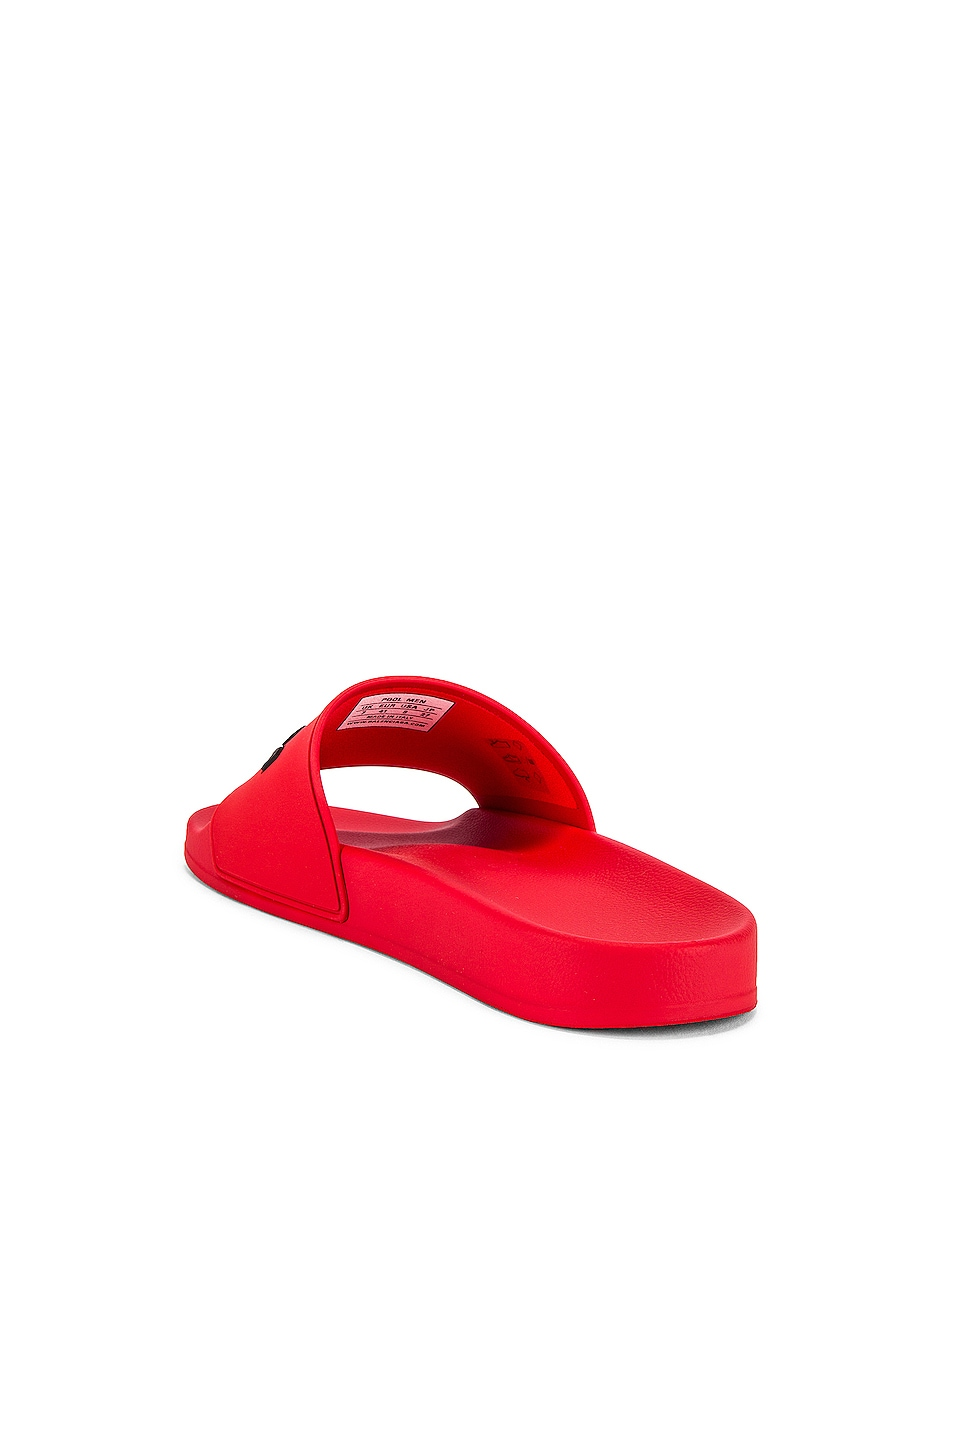 Image 3 of Balenciaga Pool Slide in Red & Black